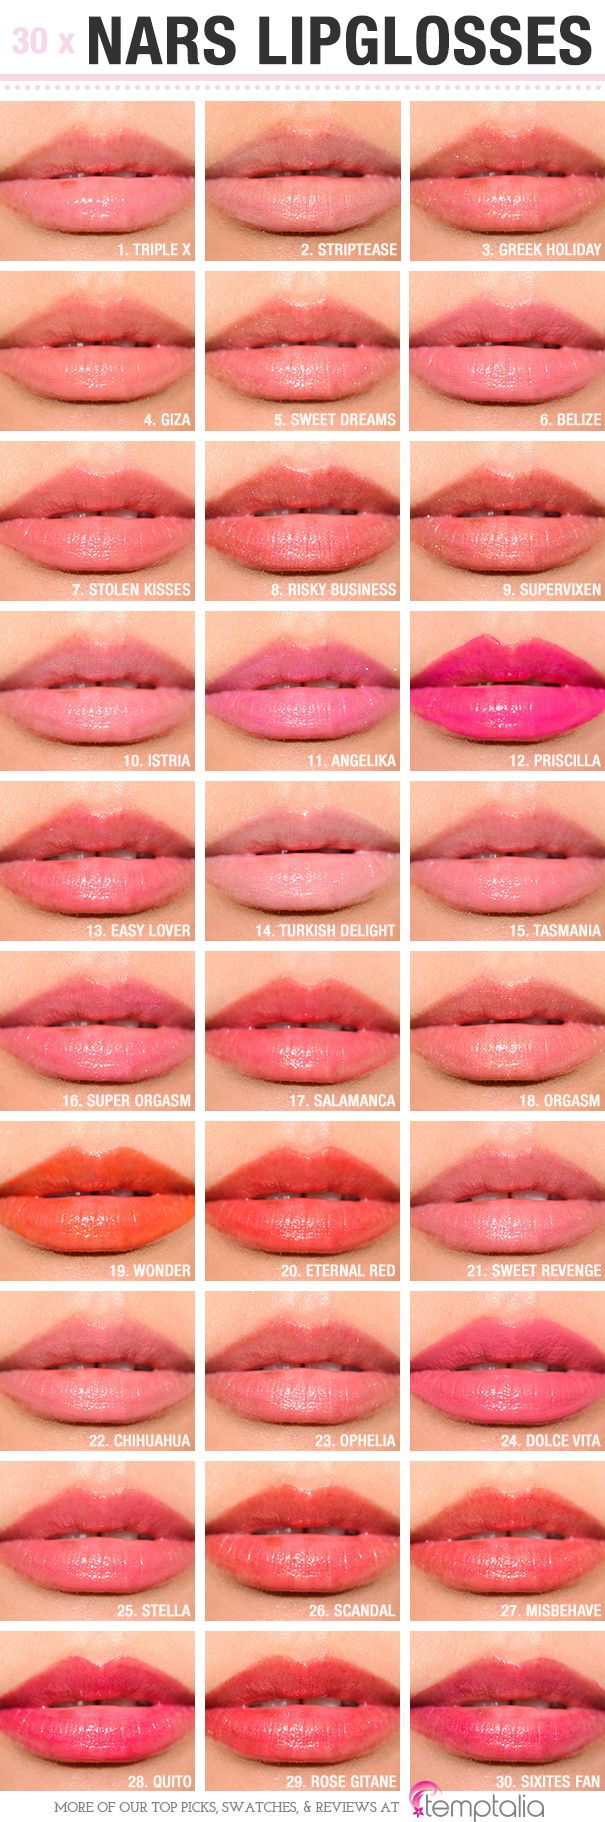 Sneak Peek: NARS Lipglosses Photos & Swatches